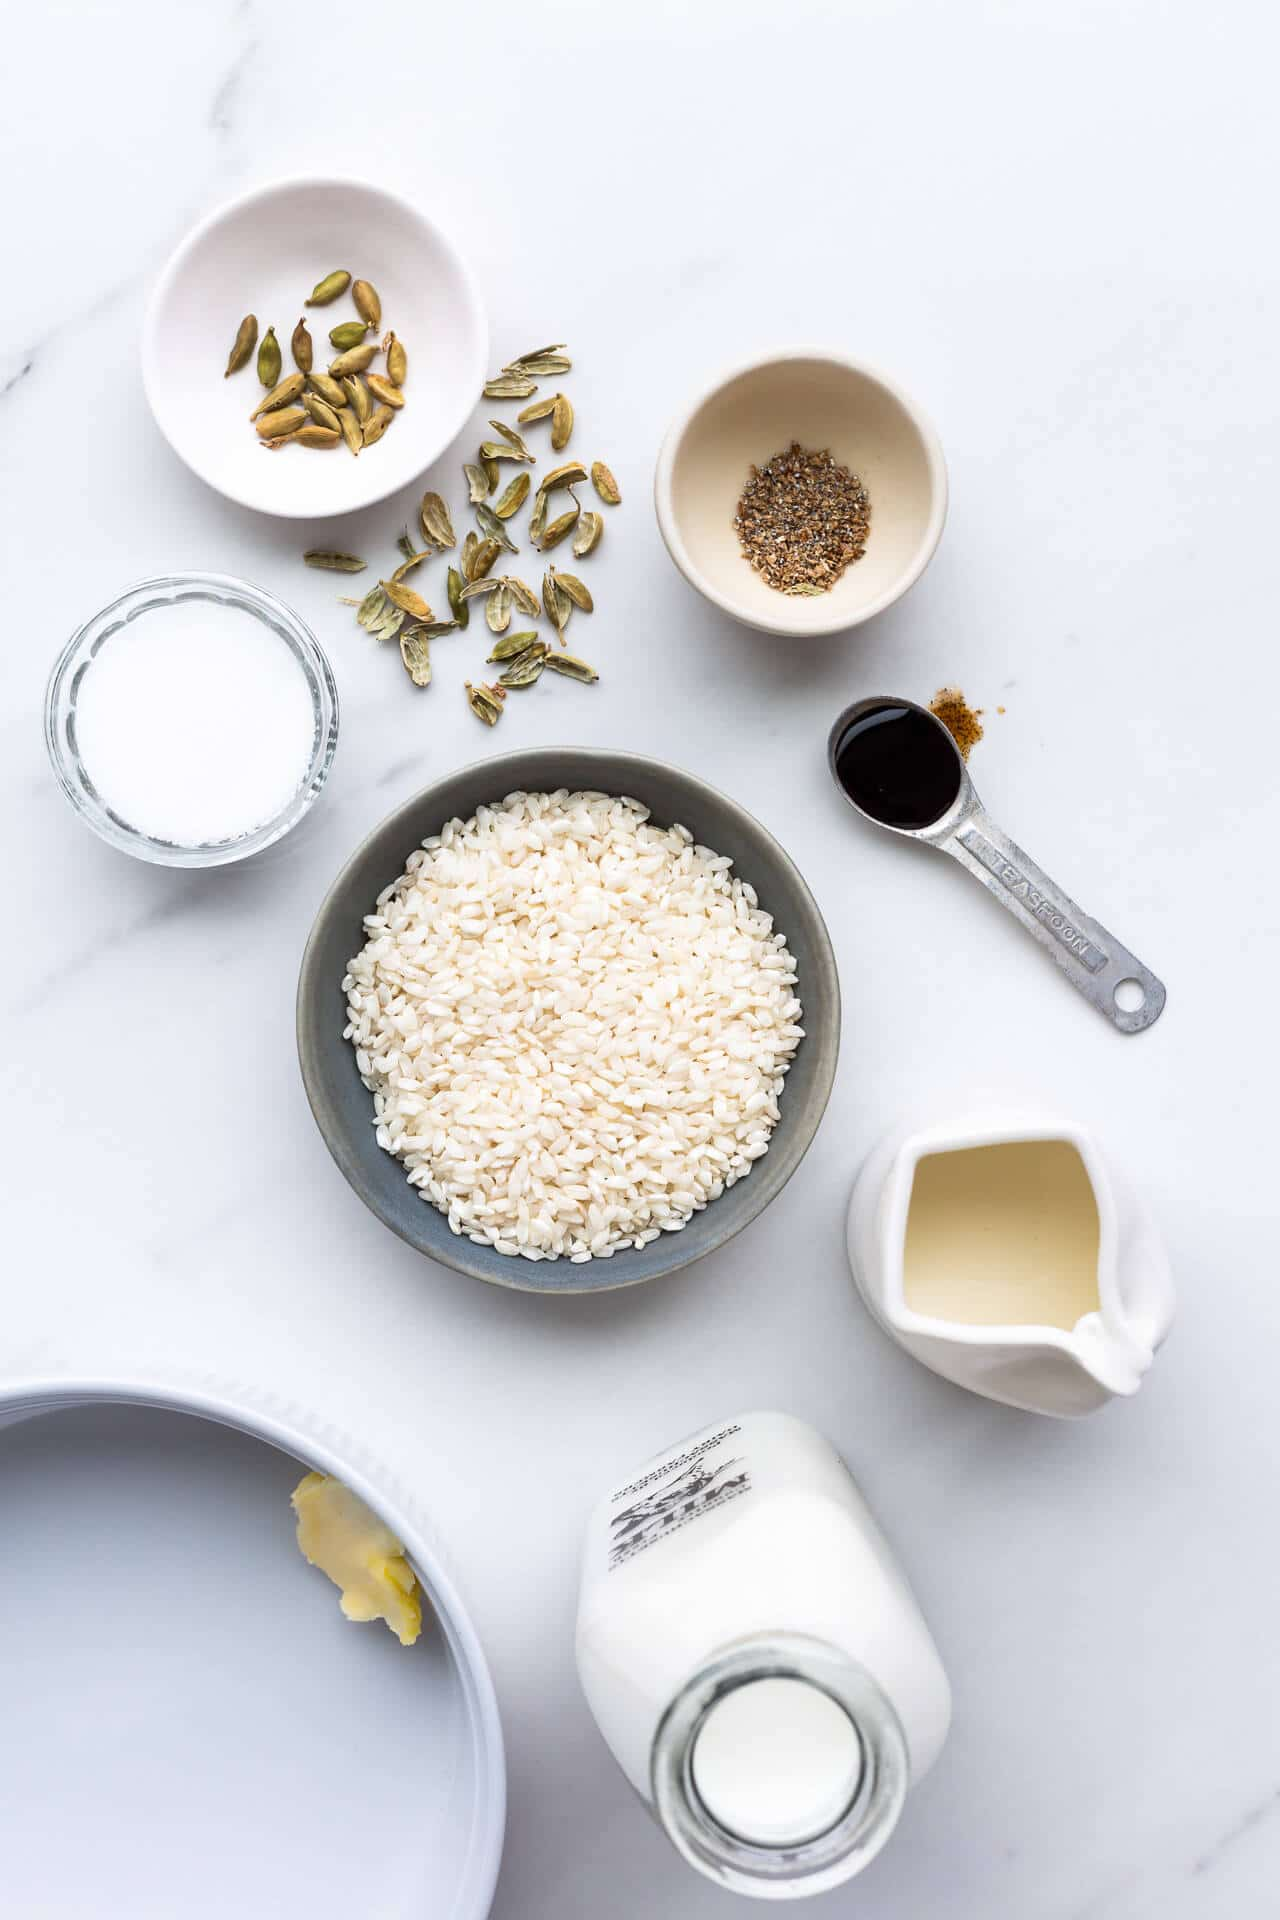 Ingredients for baked rice pudding laid out, including cardamom seeds, shelled and ground, vanilla bean paste, Arborio rice, sugar, milk, cream, and with a deep baking dish with a pat of butter on the side to grease it